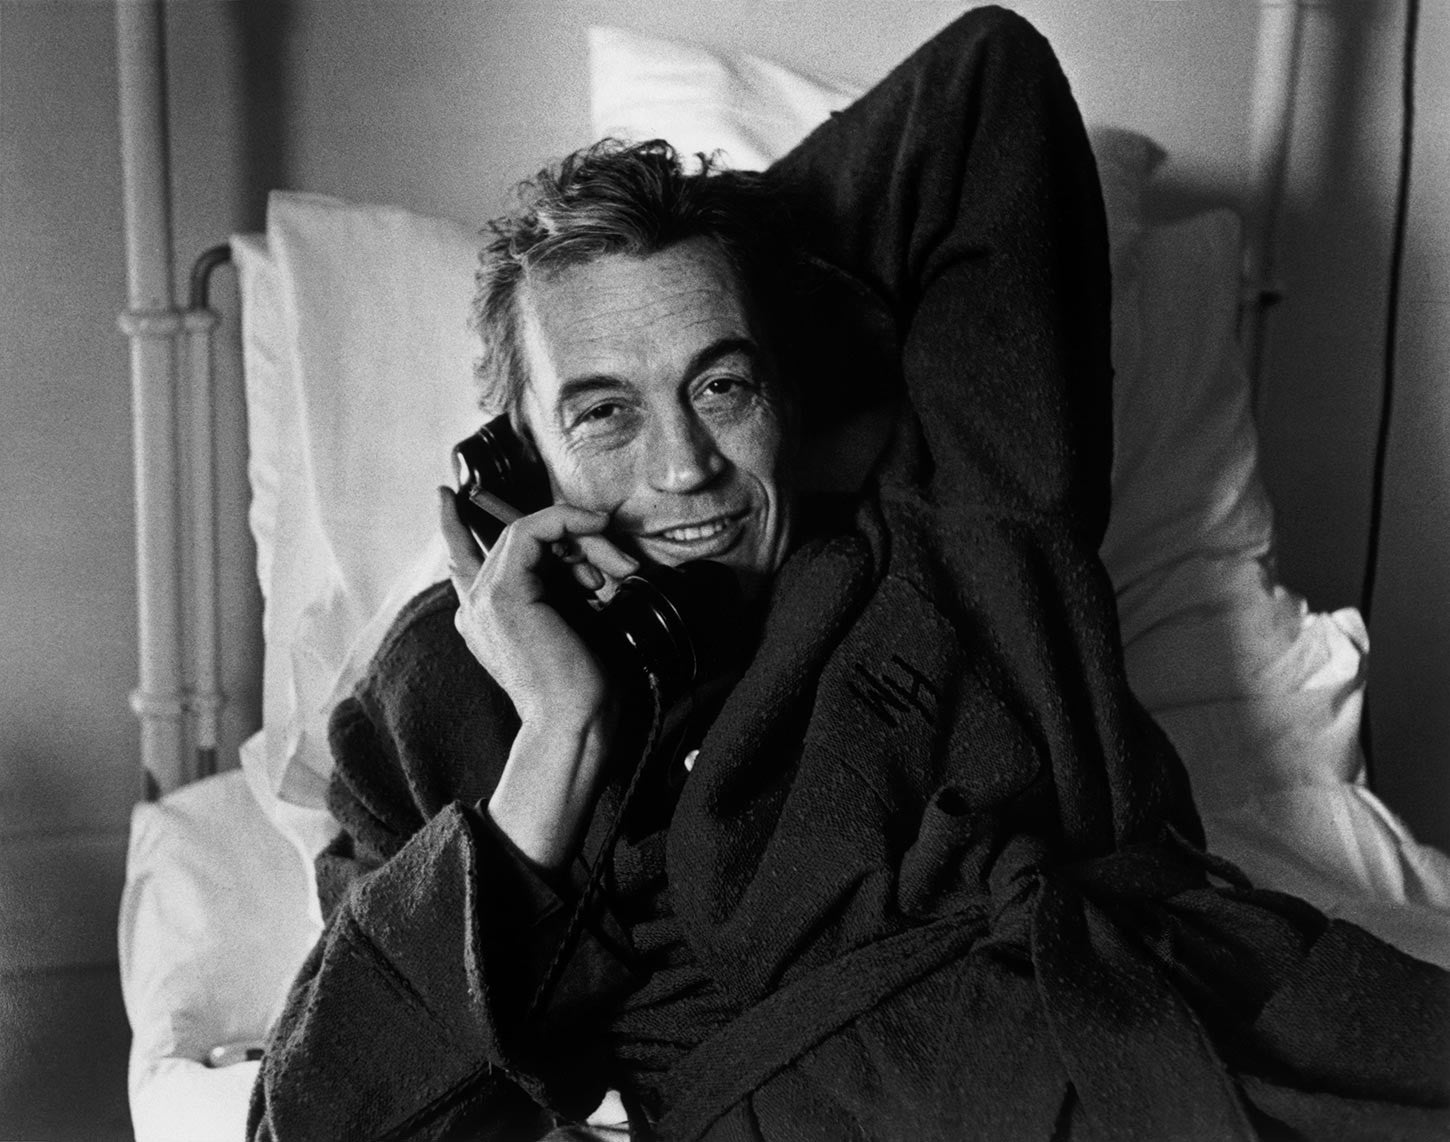 John Huston talking on the phone. England. 1953.